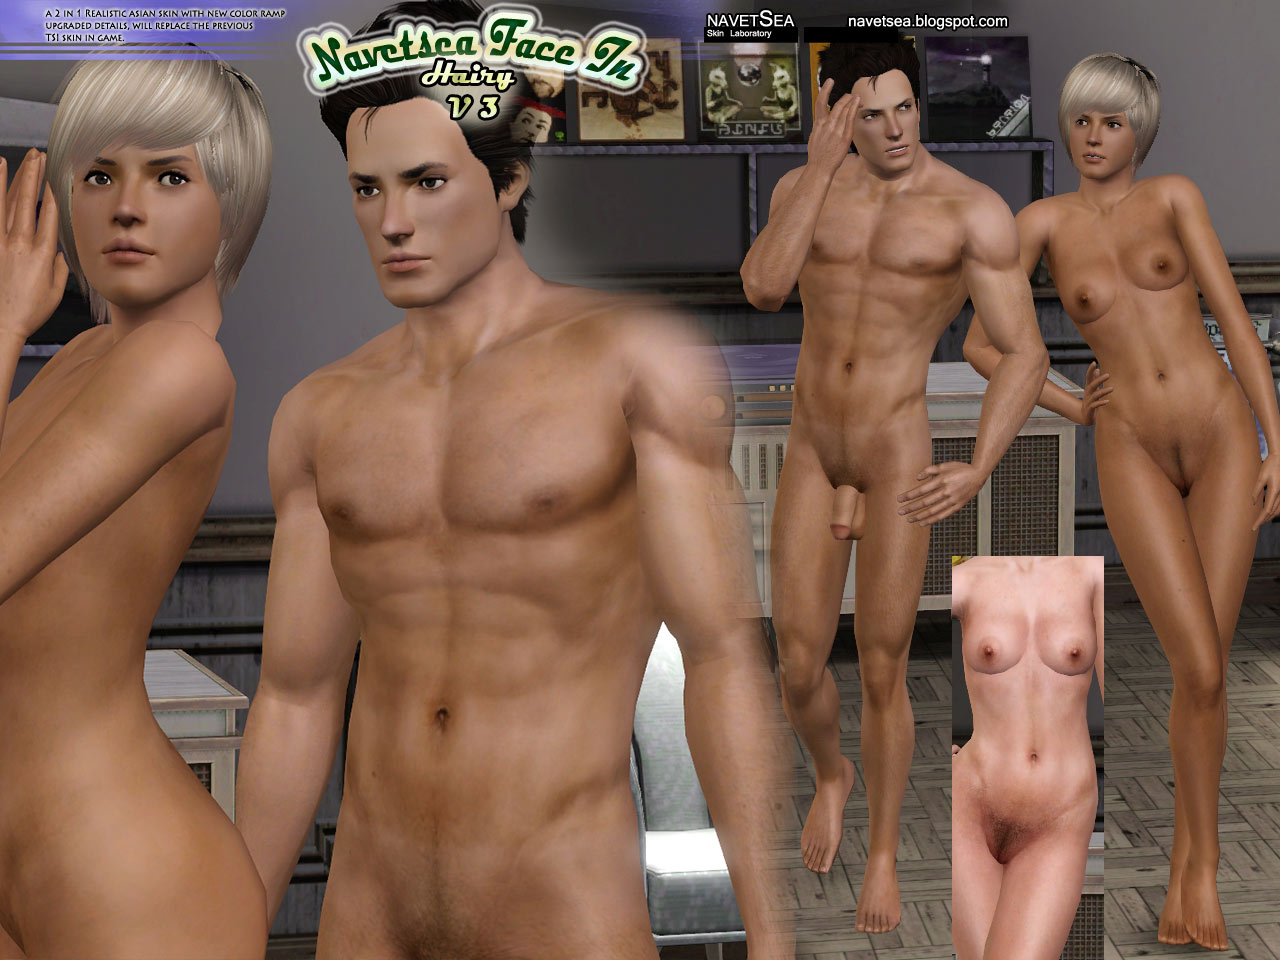 The sims having sex naked sex picture